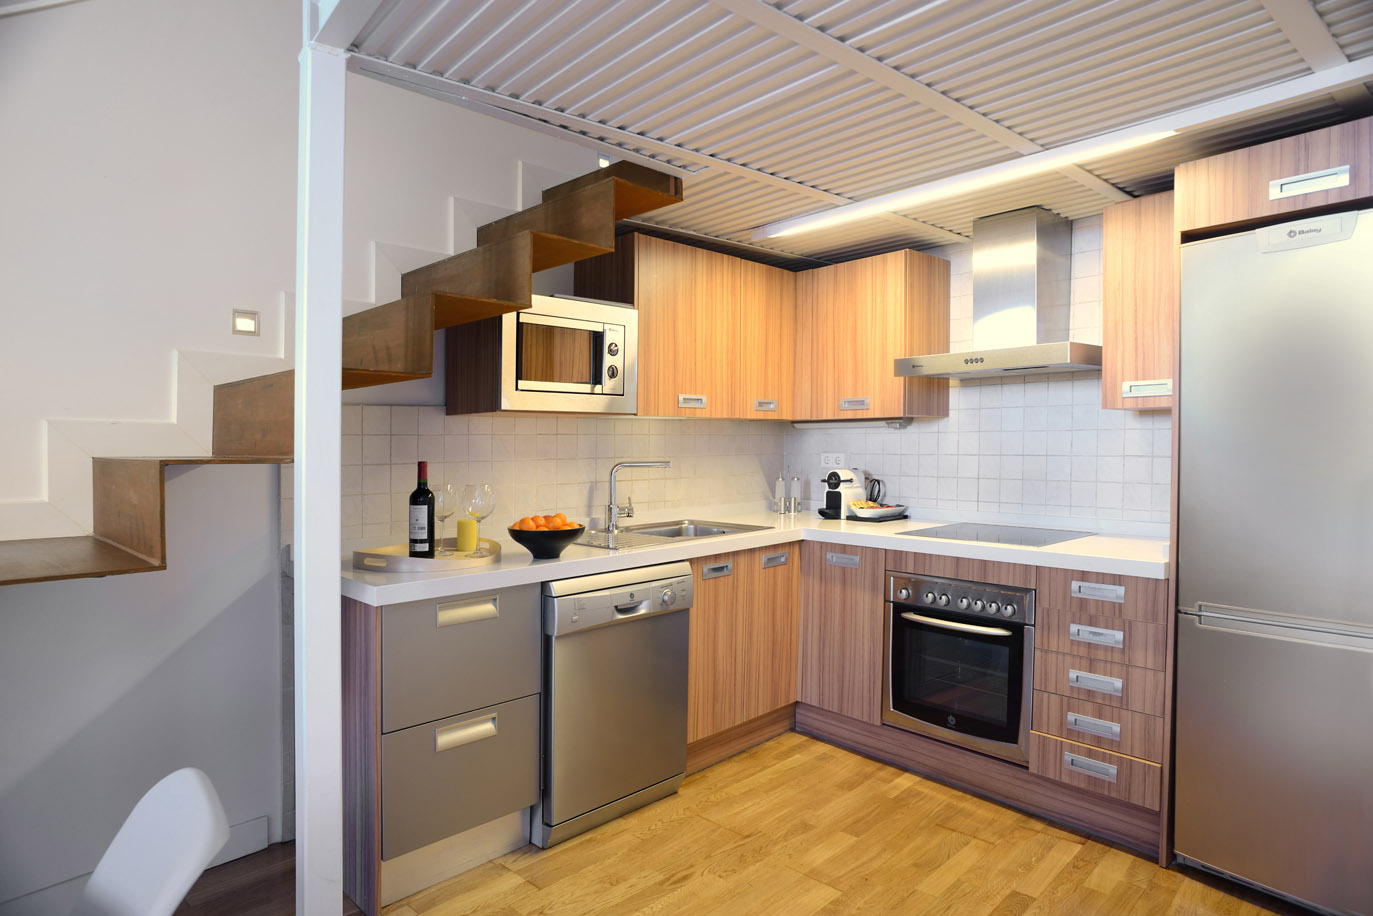 Kitchen Cabinets San Mateo Aspasios San Mateo Boutique Apartments Central Apartments Madrid